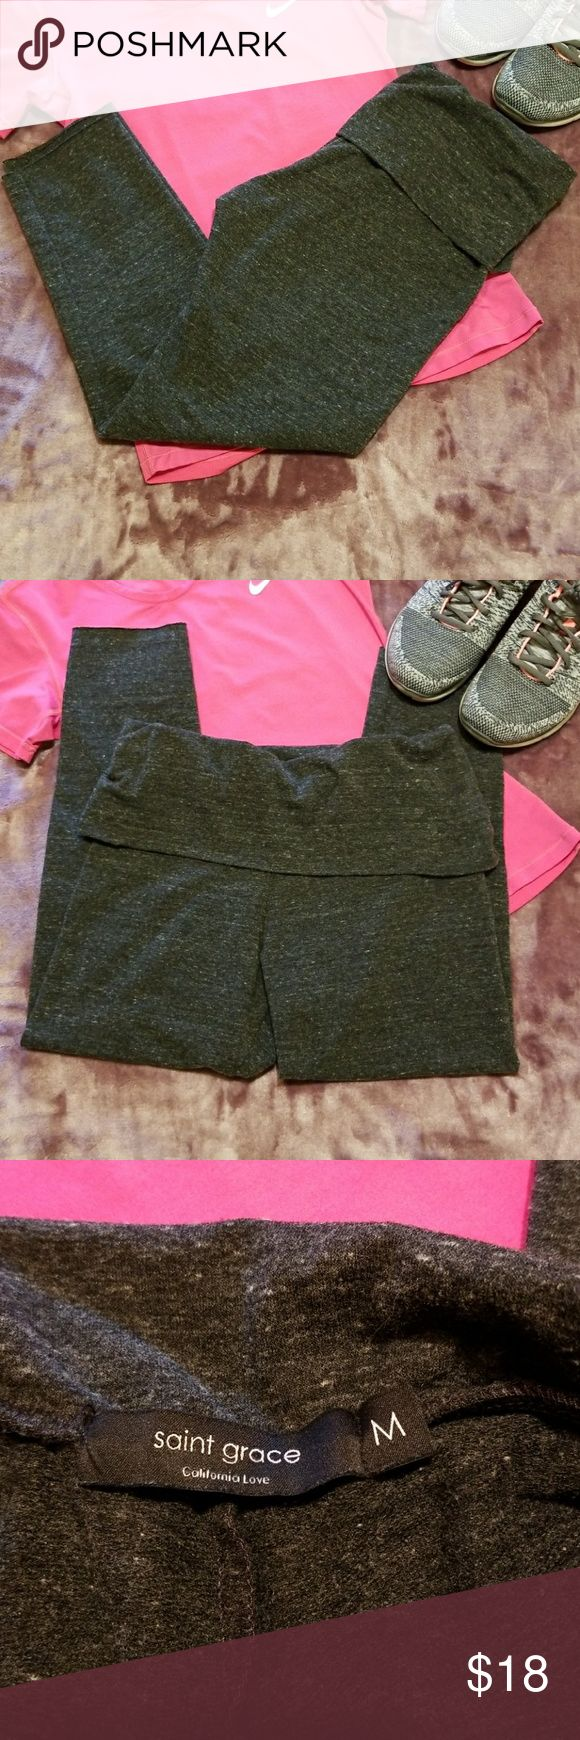 Saint Grace fold over crop leggings size medium Super cute and in very good  pre loved condition.  Saint Grace fold over crop leggings. Size Medium. Measurements in pictures. Feel free to ask questions. Made in USA (Accessories not included). Saint Grace Pants Leggings